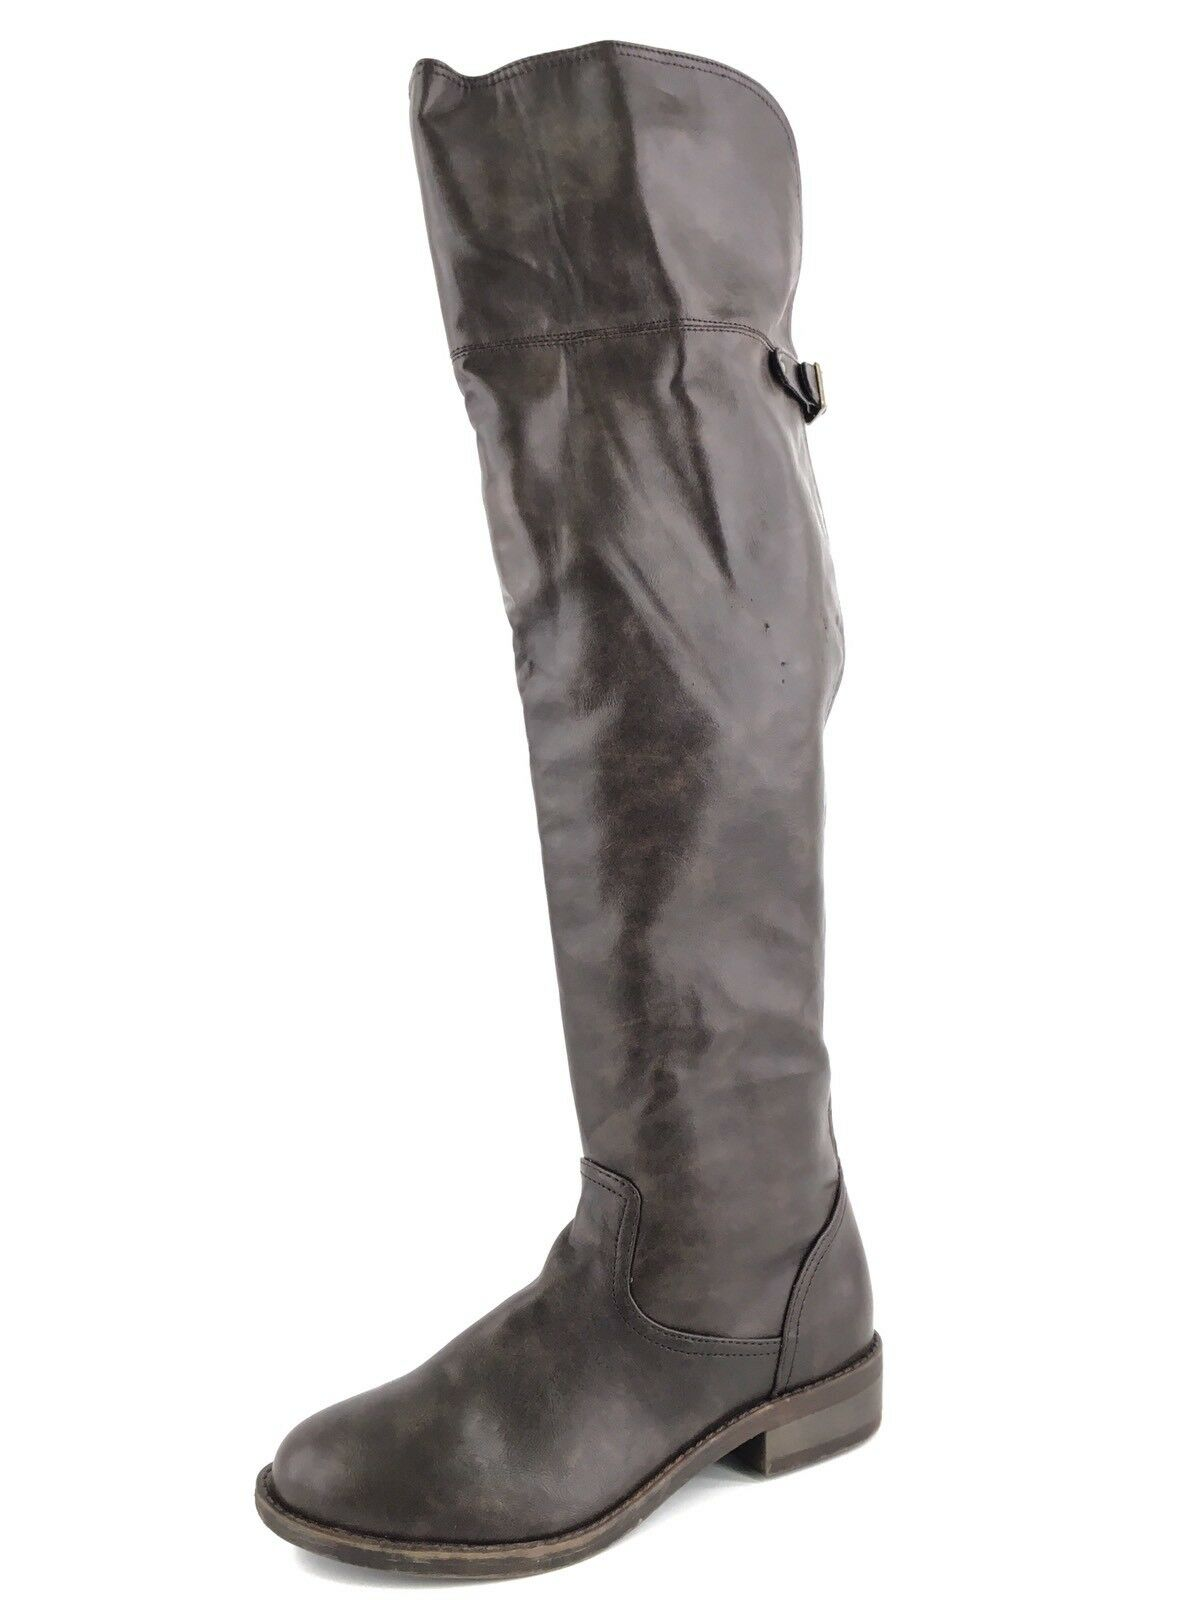 New Zigi Soho OCTAVIA Over The Knee Brown Leather Boots Womens Size 6 M